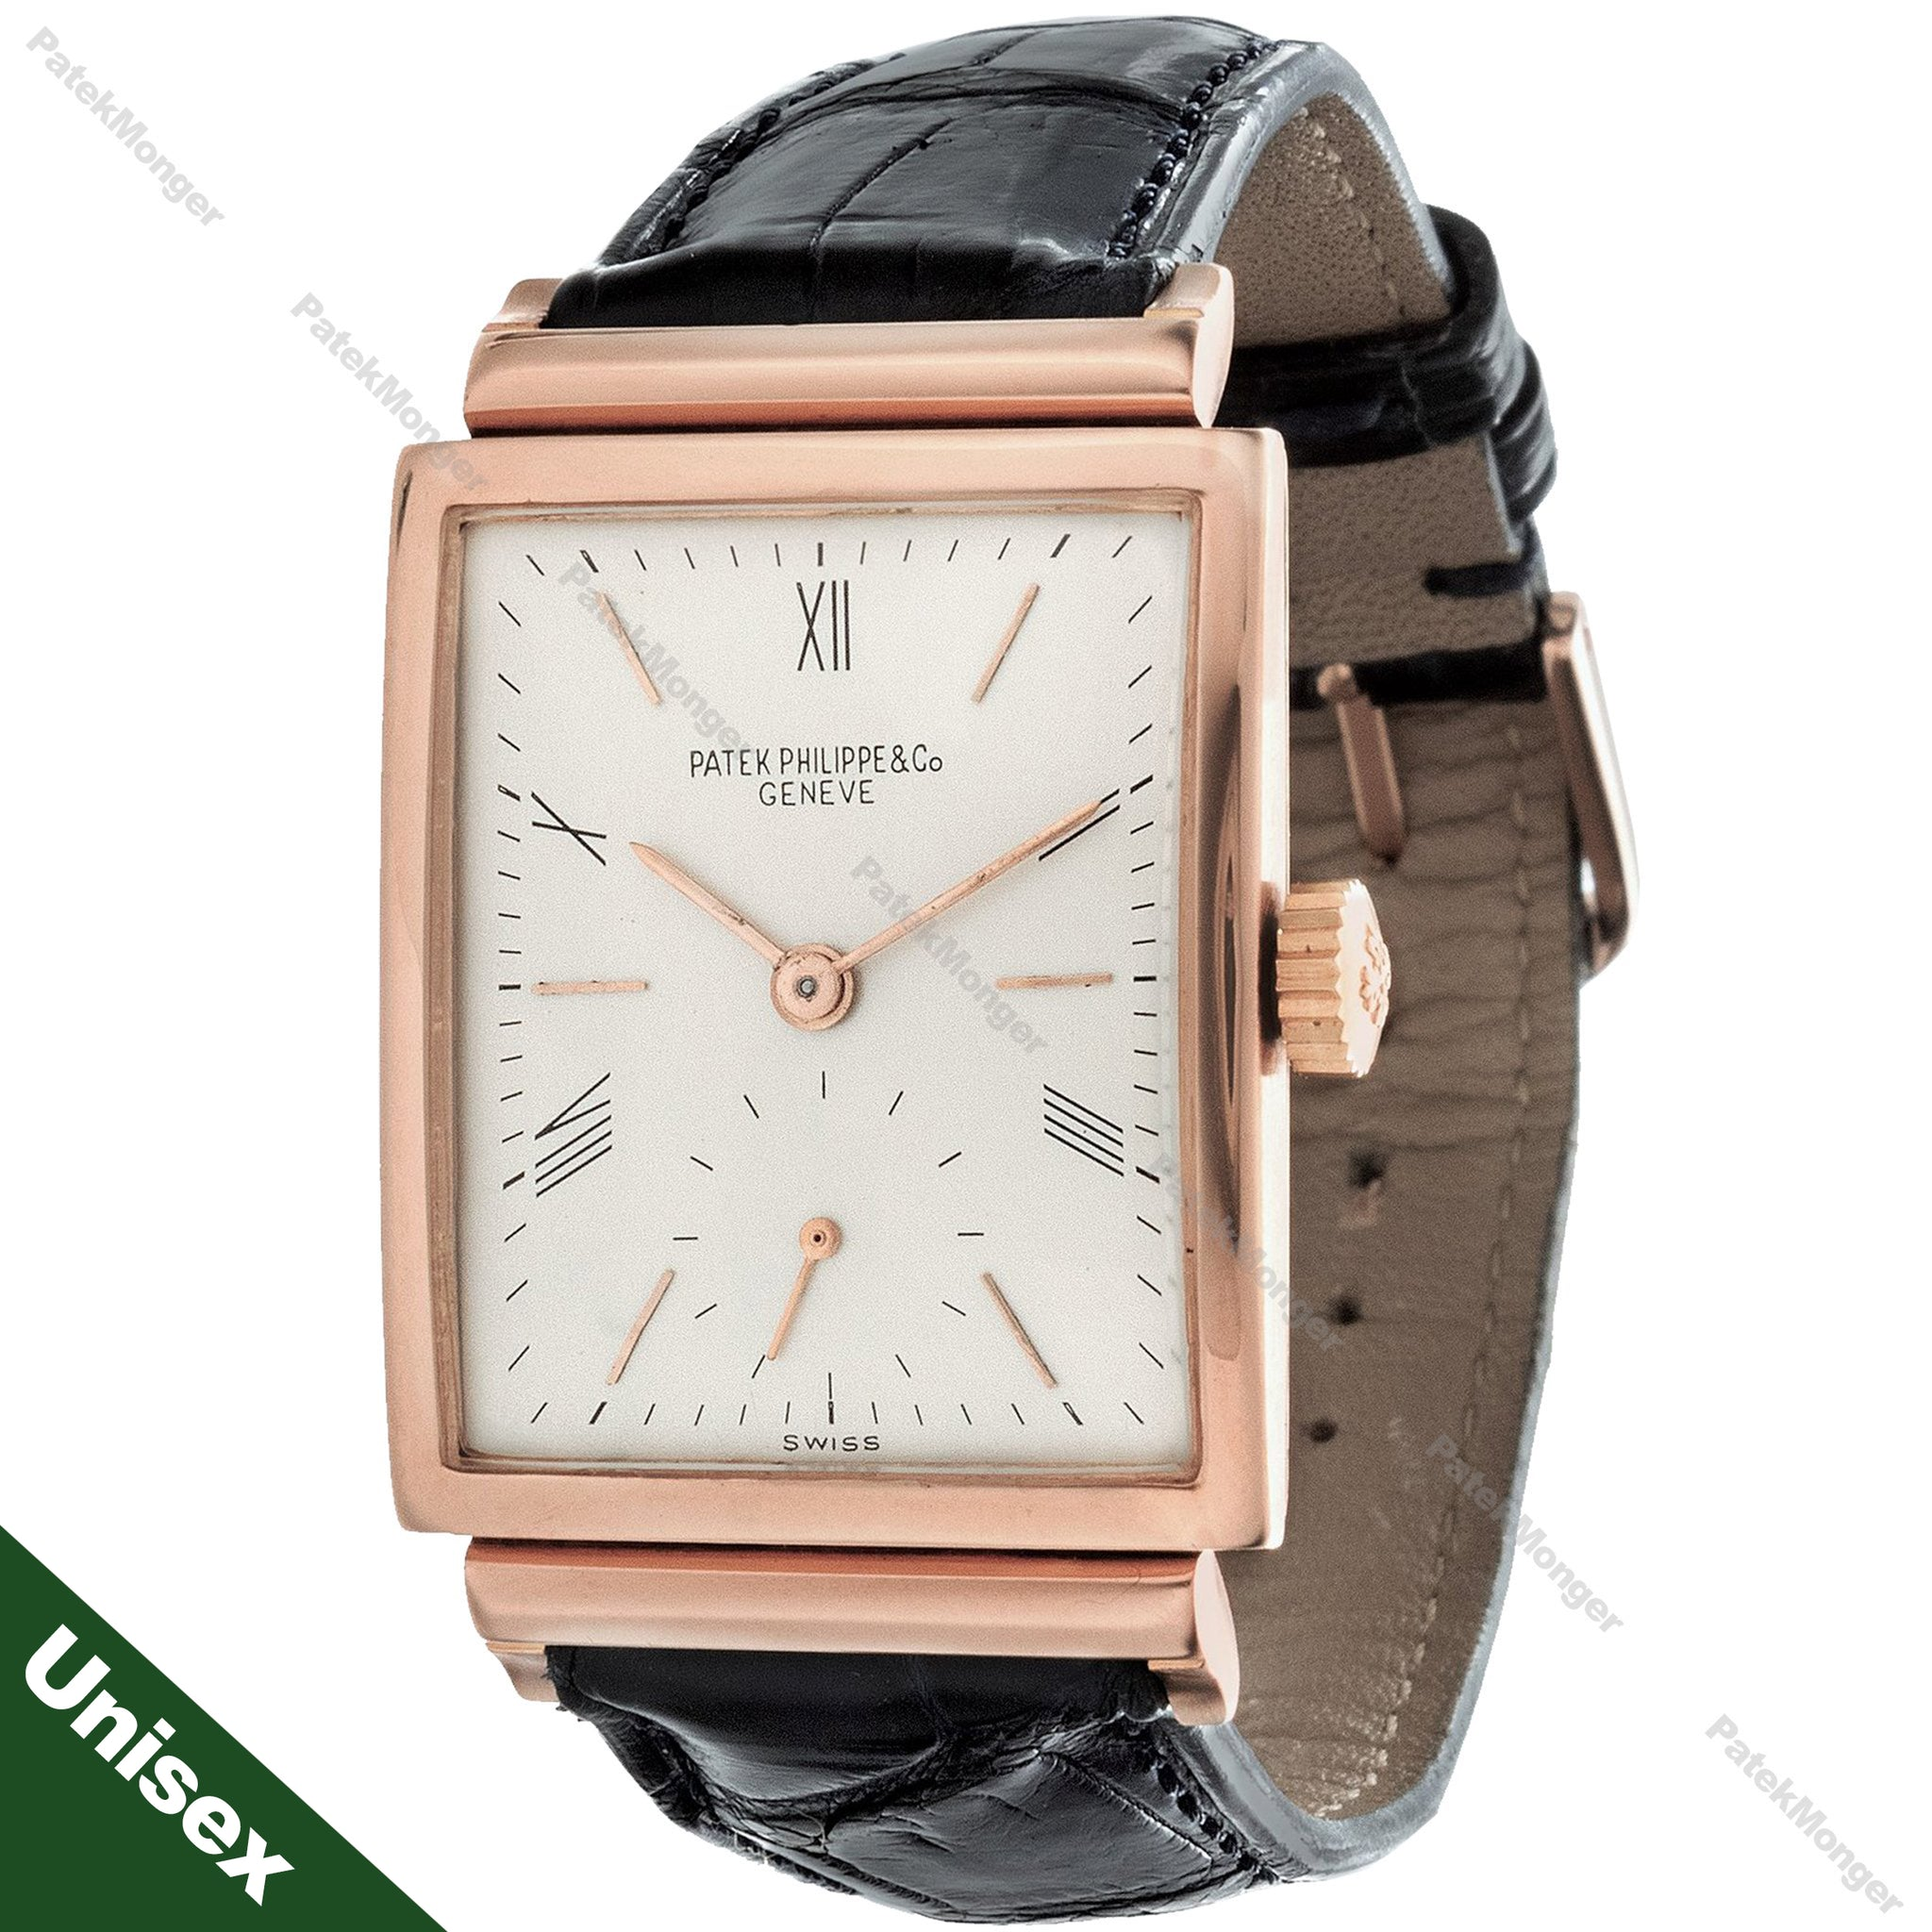 Patek Philippe 1577R Rectangular Watch